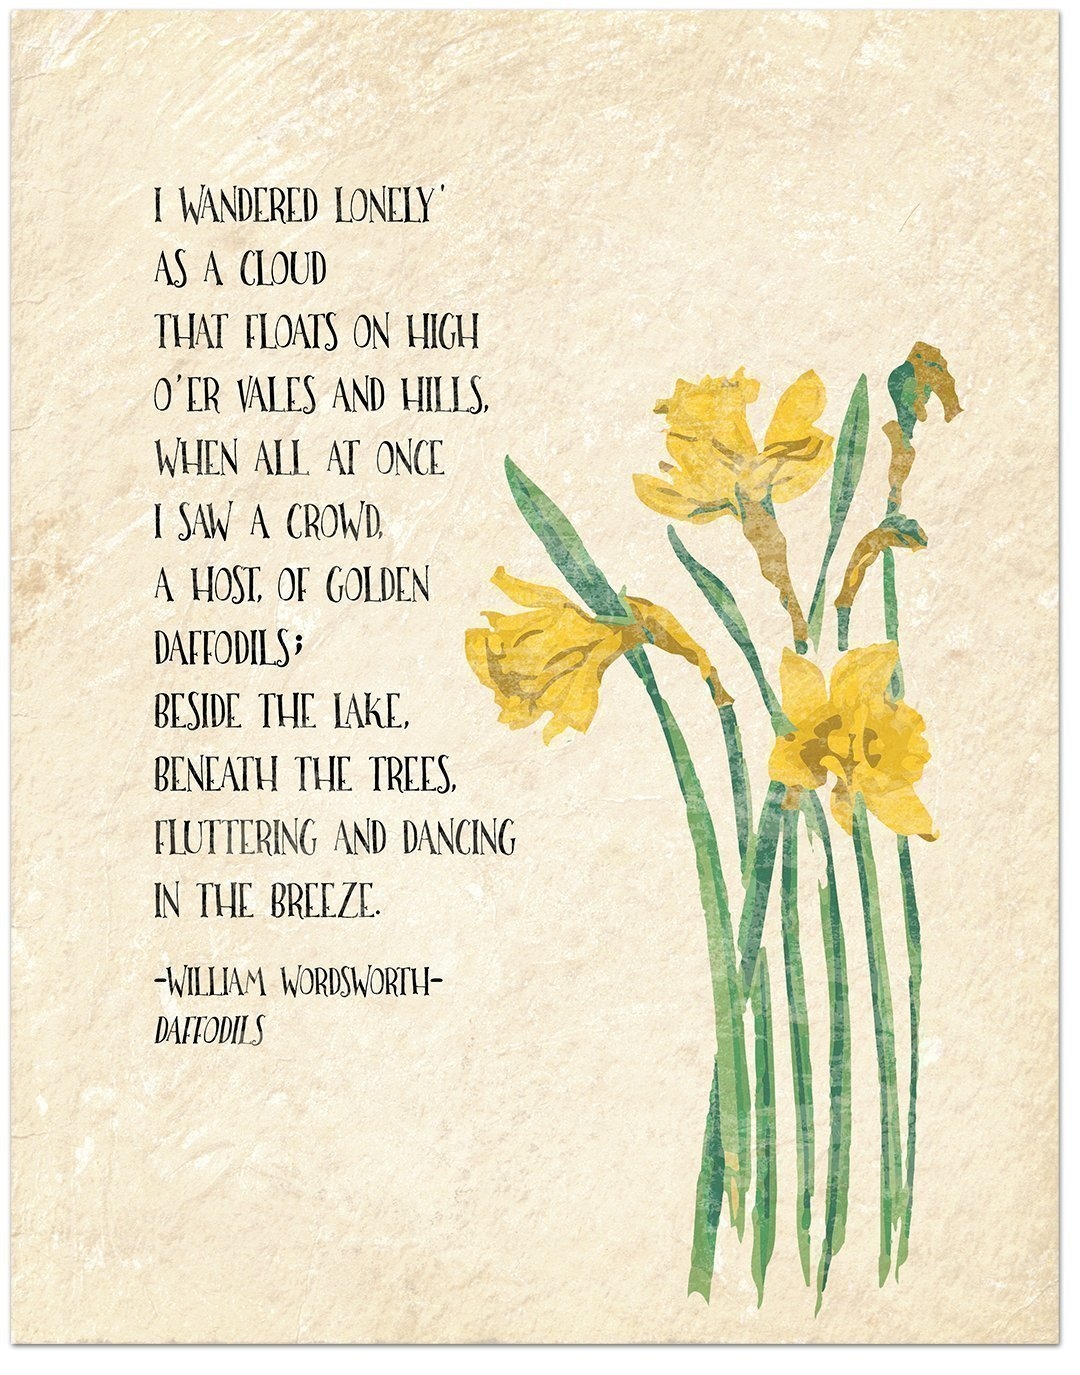 Quality inspection Golden Daffodils William Wordsworth Inspirational Literary Quote unisex